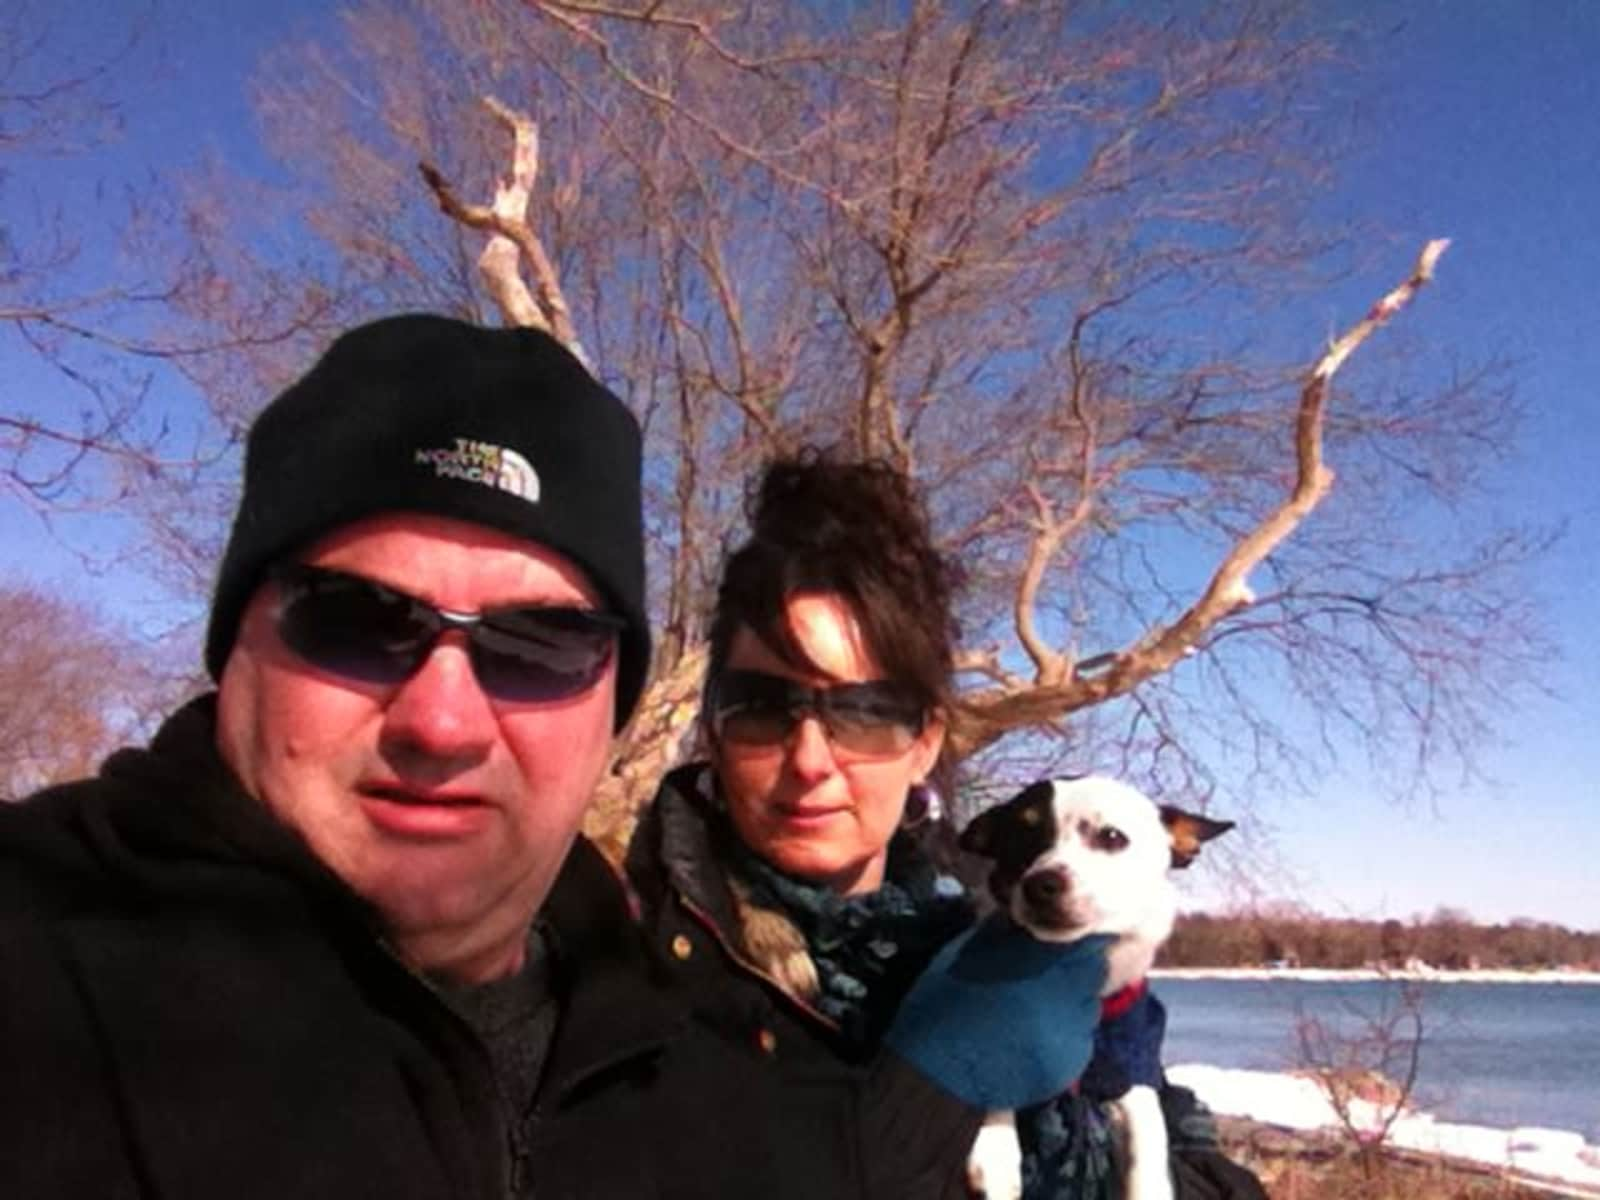 Gilles l & Danyiel from Kingston, Ontario, Canada